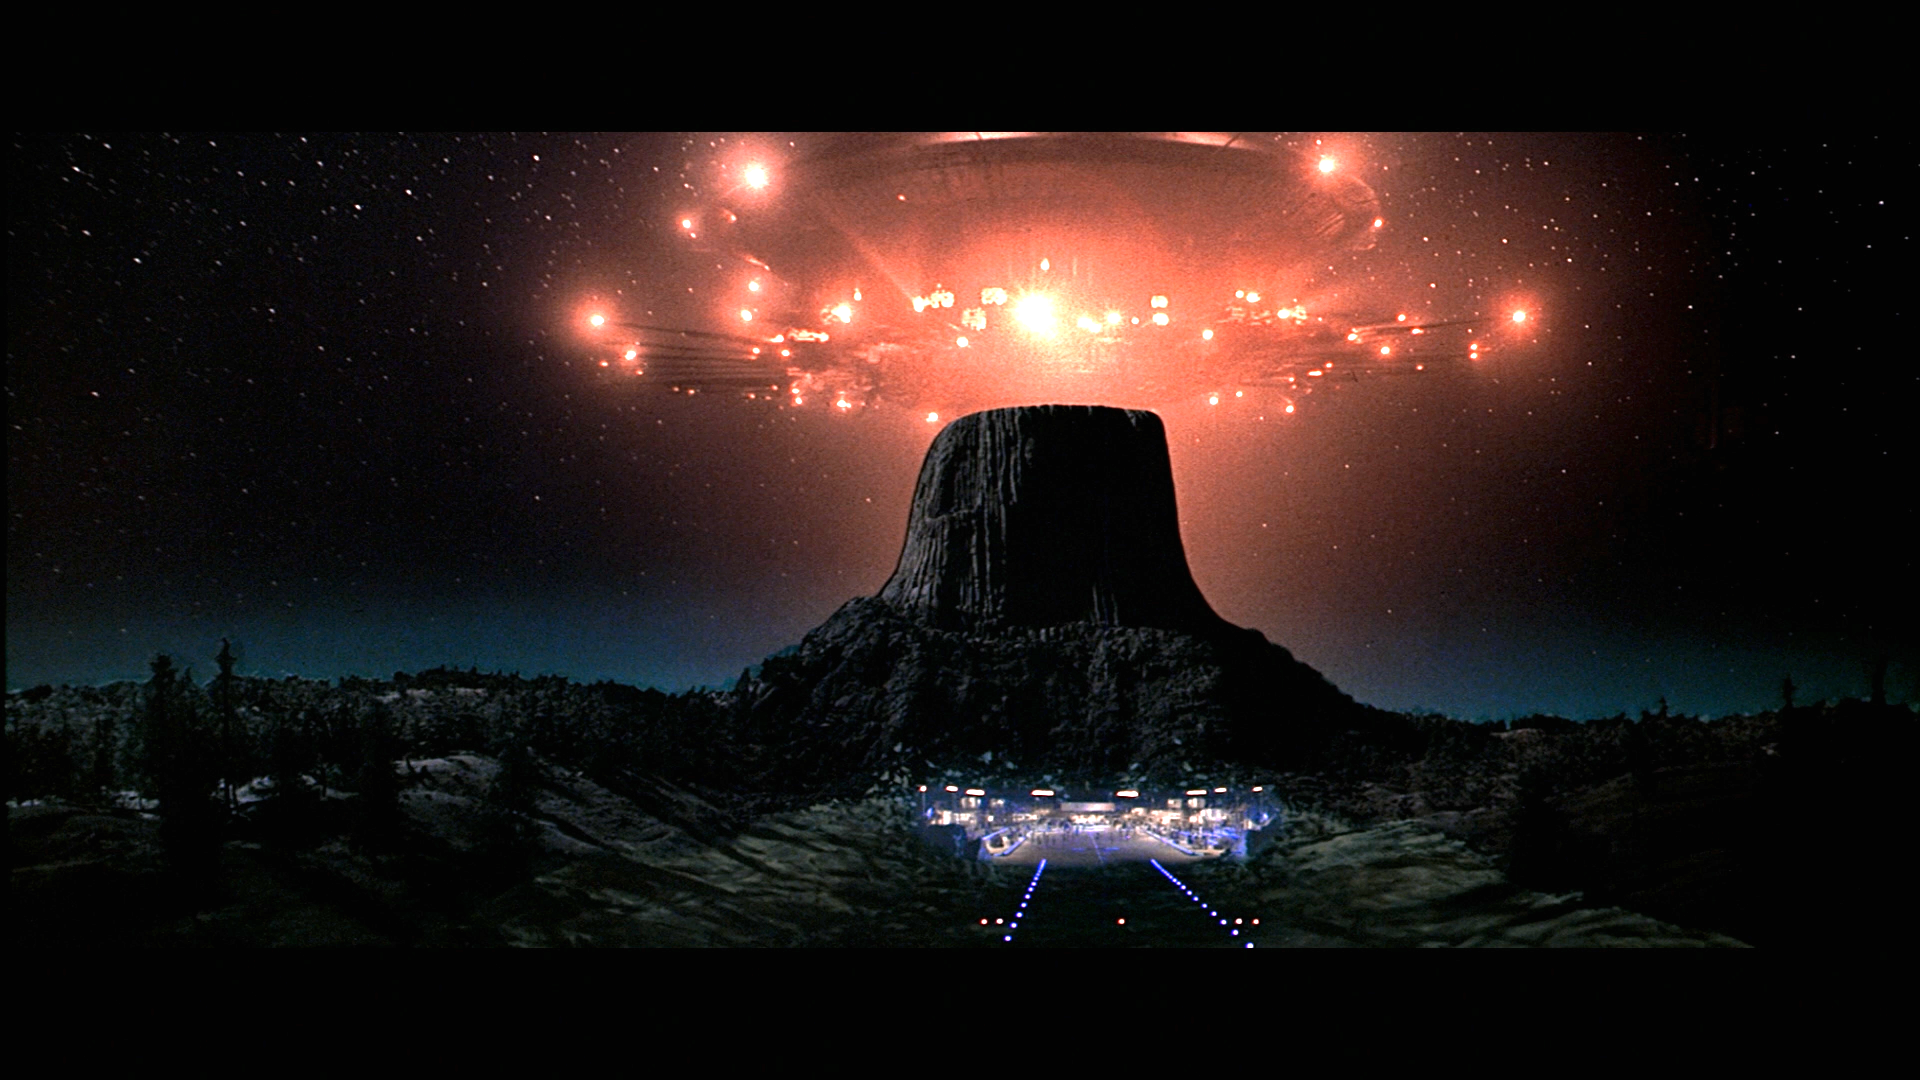 close encounters of the third kind essay When the alien ships descend on wyoming, in the climactic scene of stephen  spielberg's 1977 close encounters of the third kind, the usual trappings of.